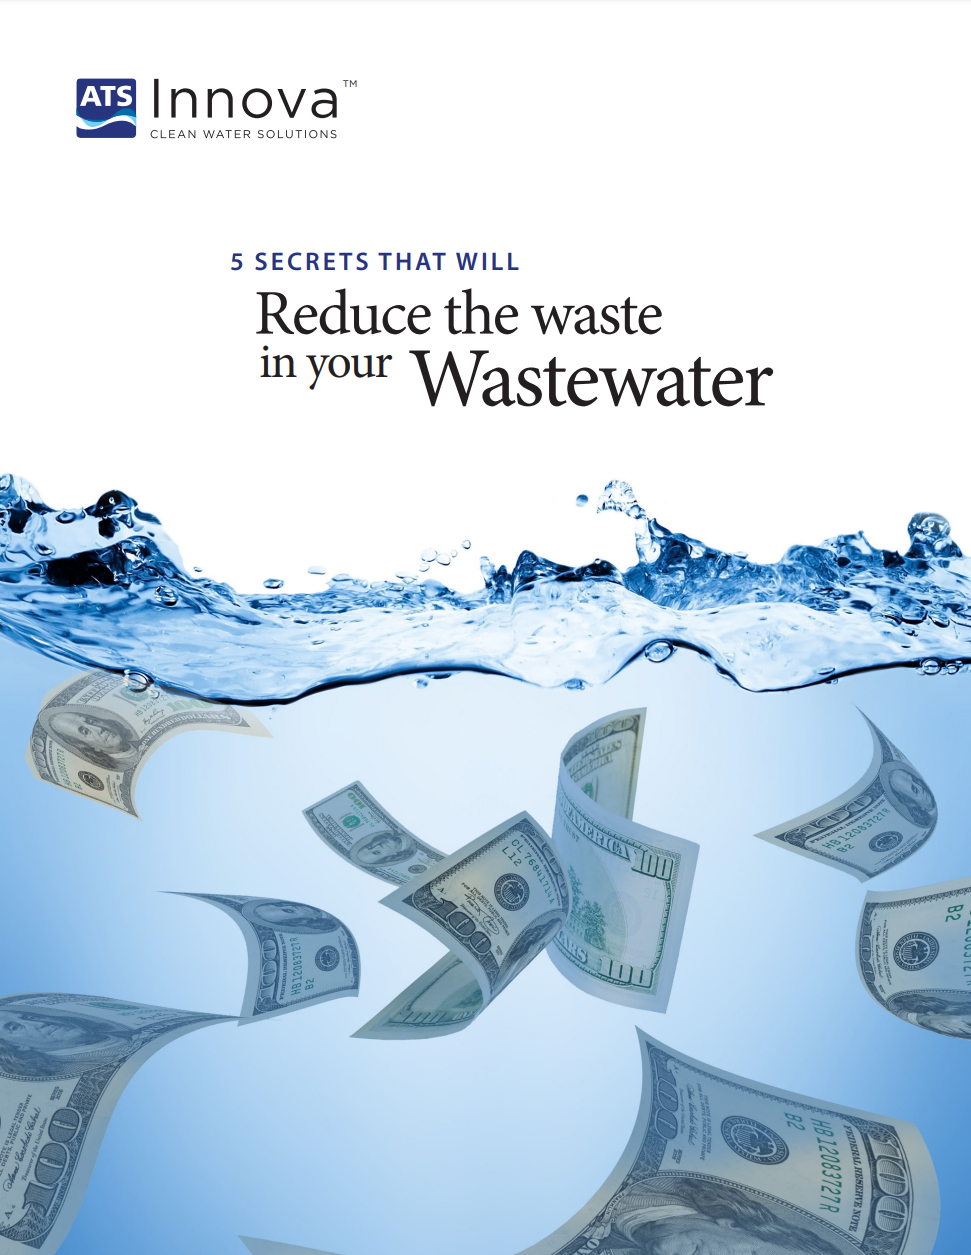 """The first page of """"Five Secrets that will significantly reduce the waste in your wastewater."""""""